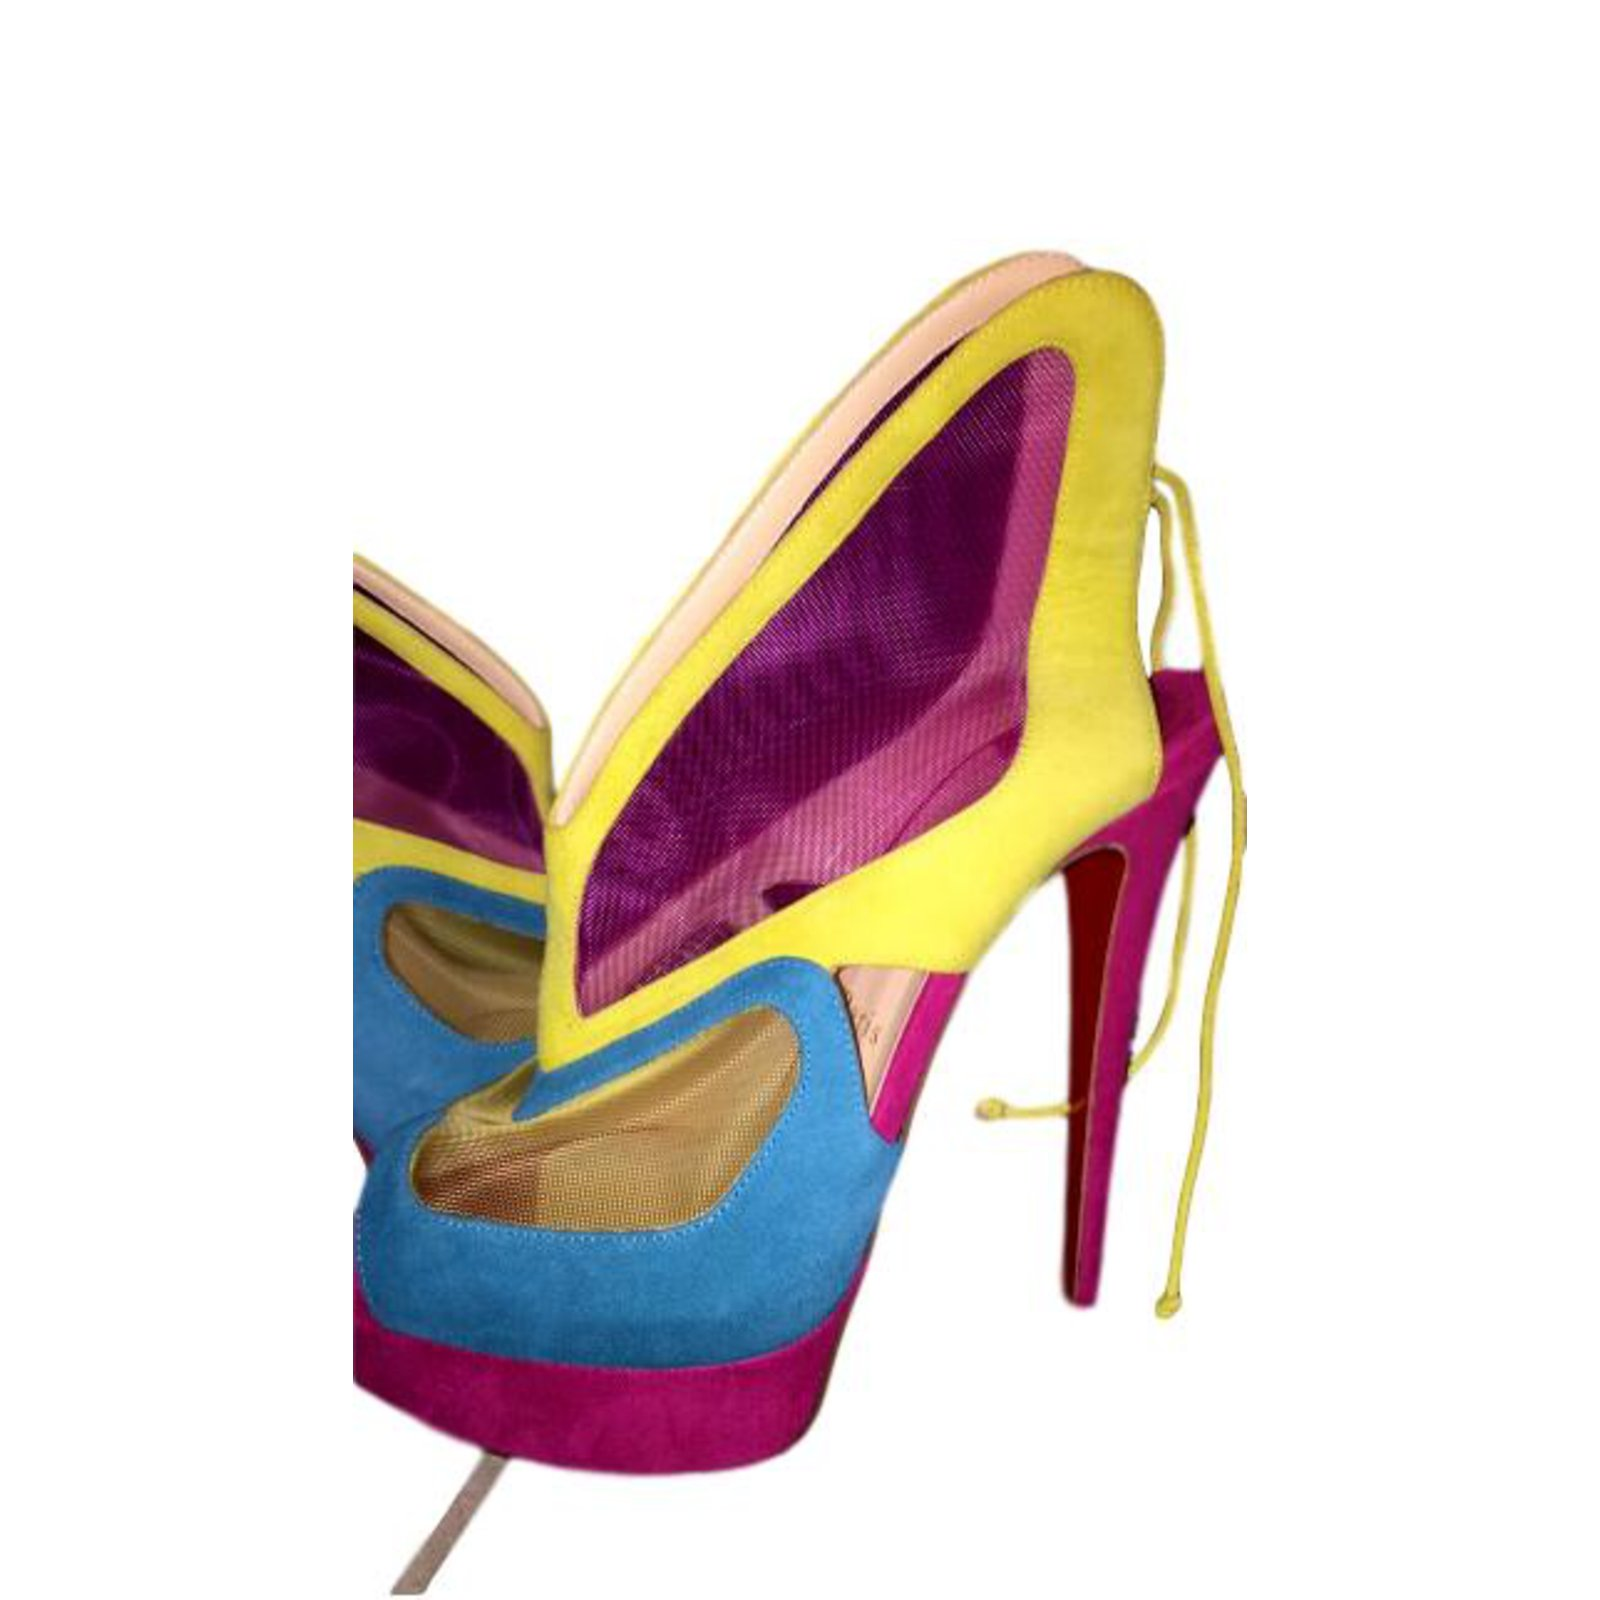 91a41aa29d5 Christian Louboutin Louboutin Heels Velvet Multiple colors ref.108116